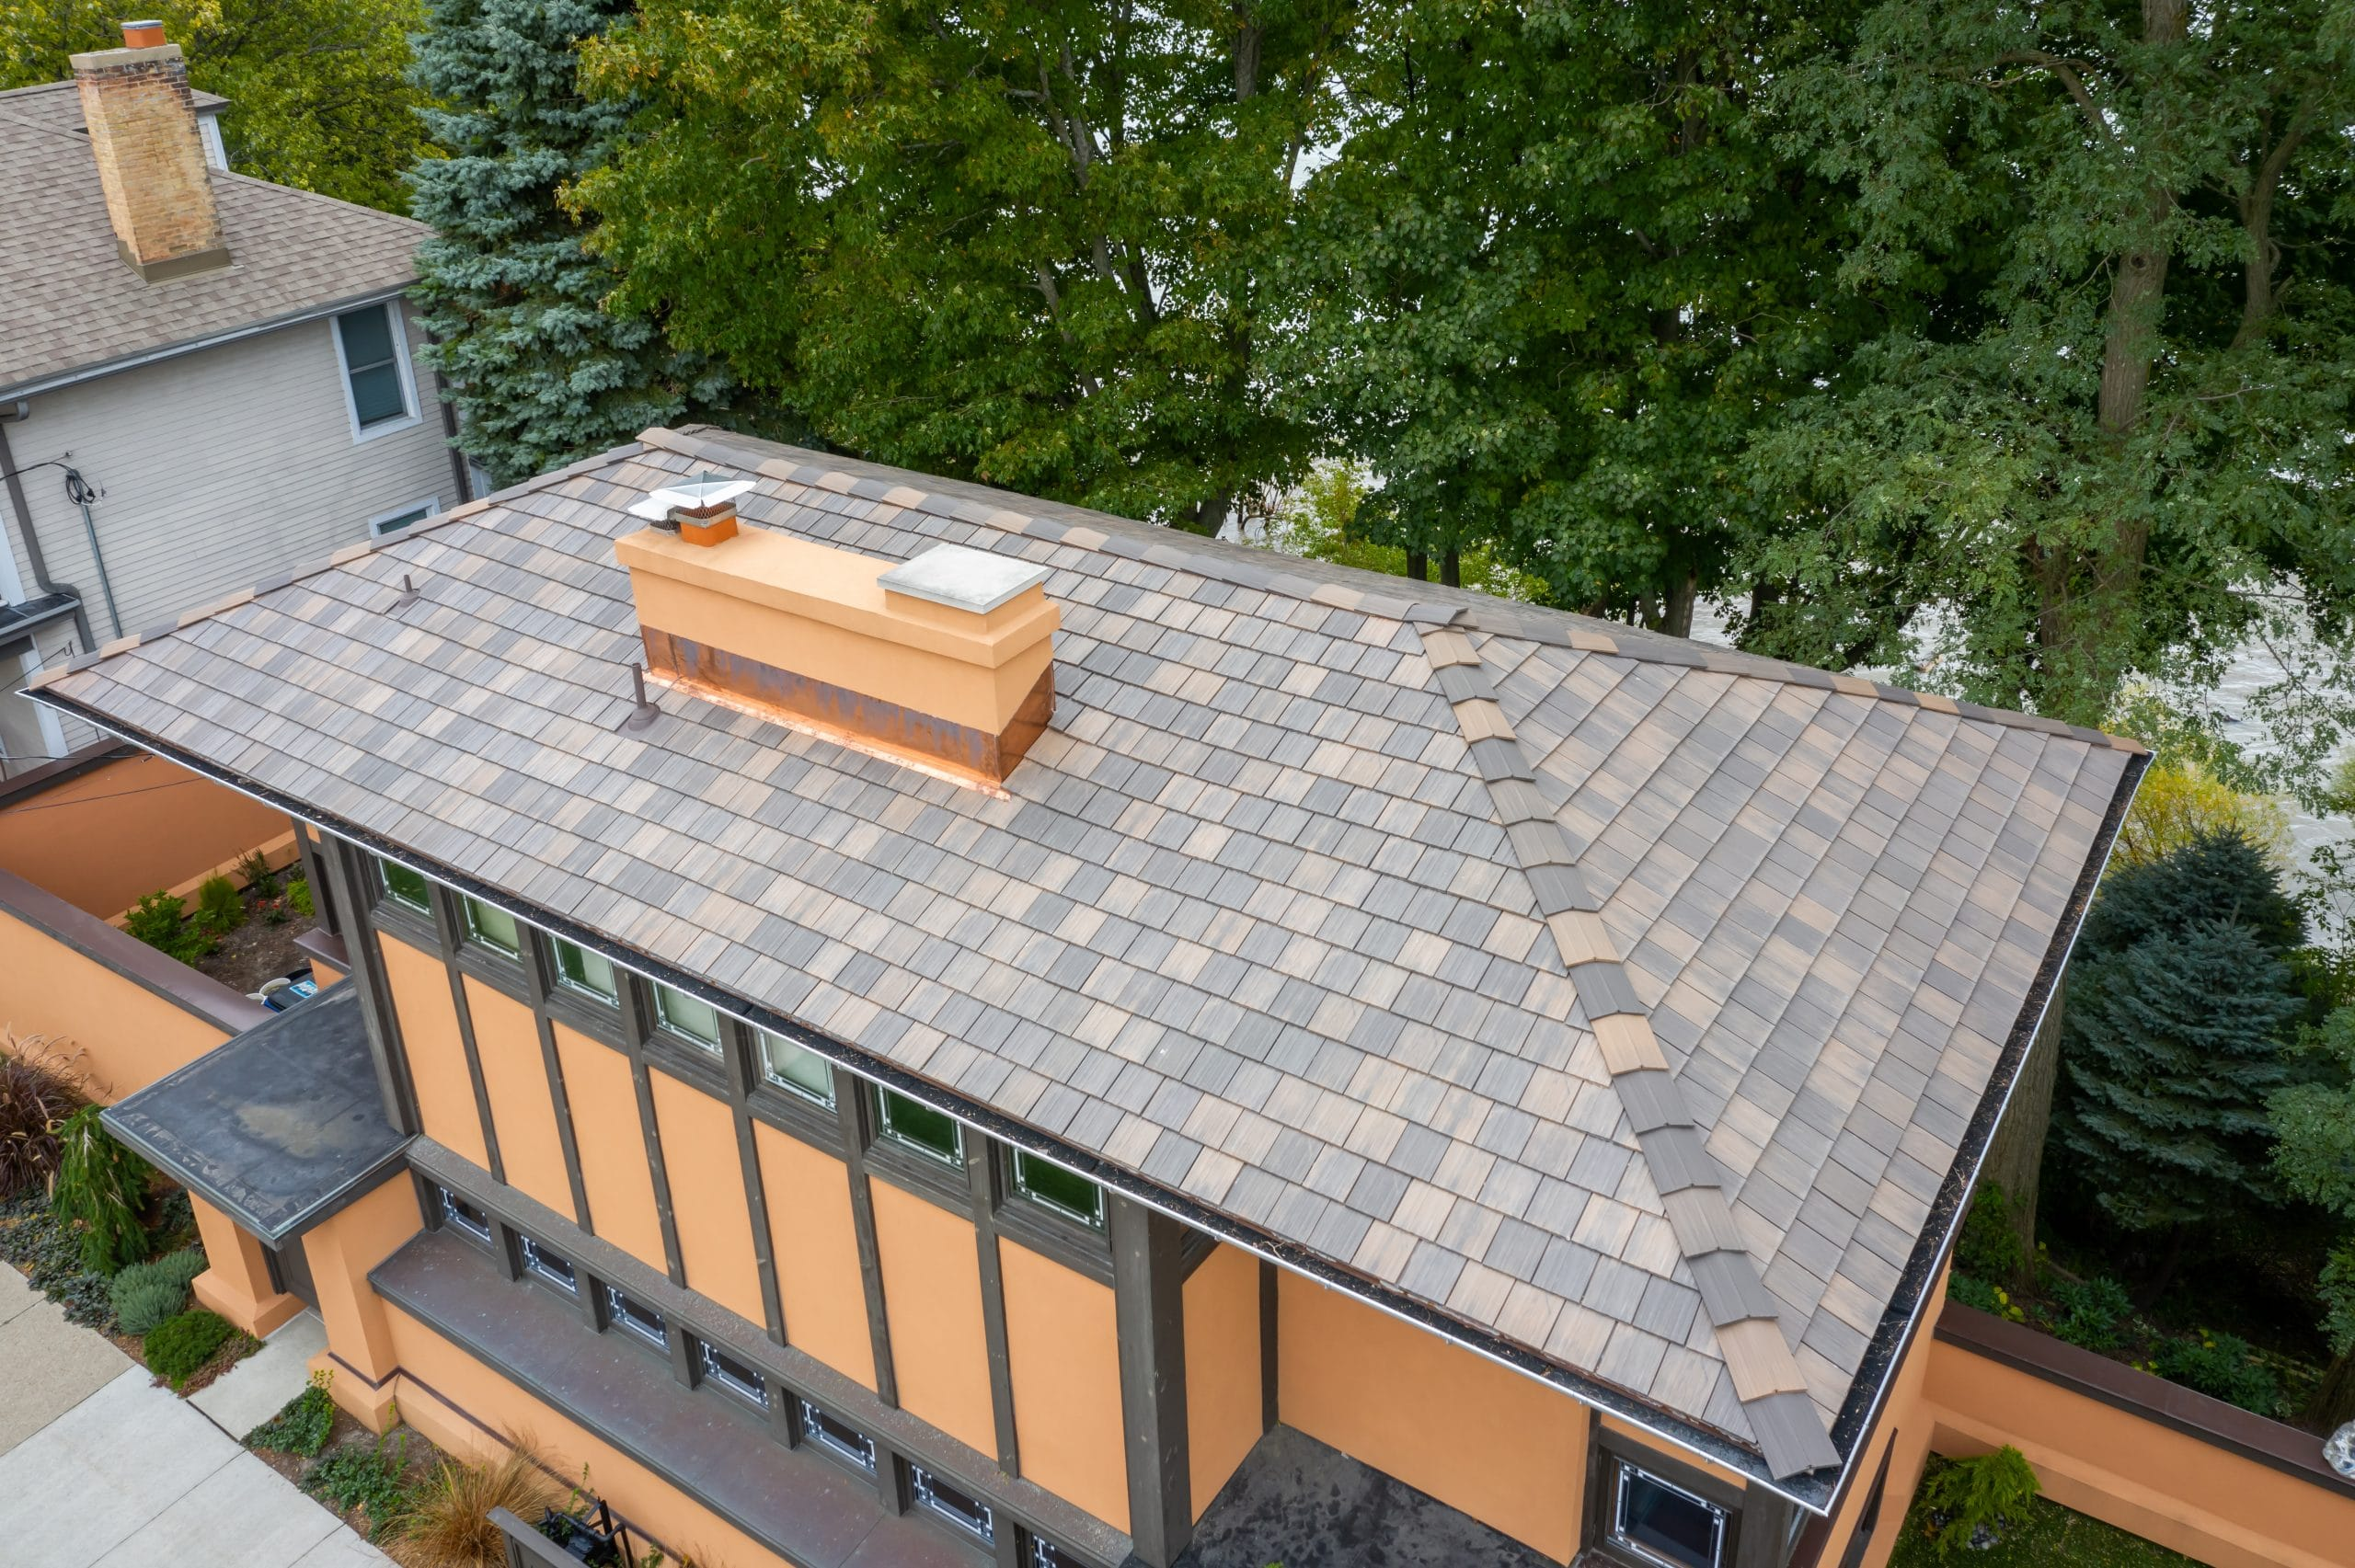 A closer look at the DaVinci roof on this historic Frank Lloyd Wright home.